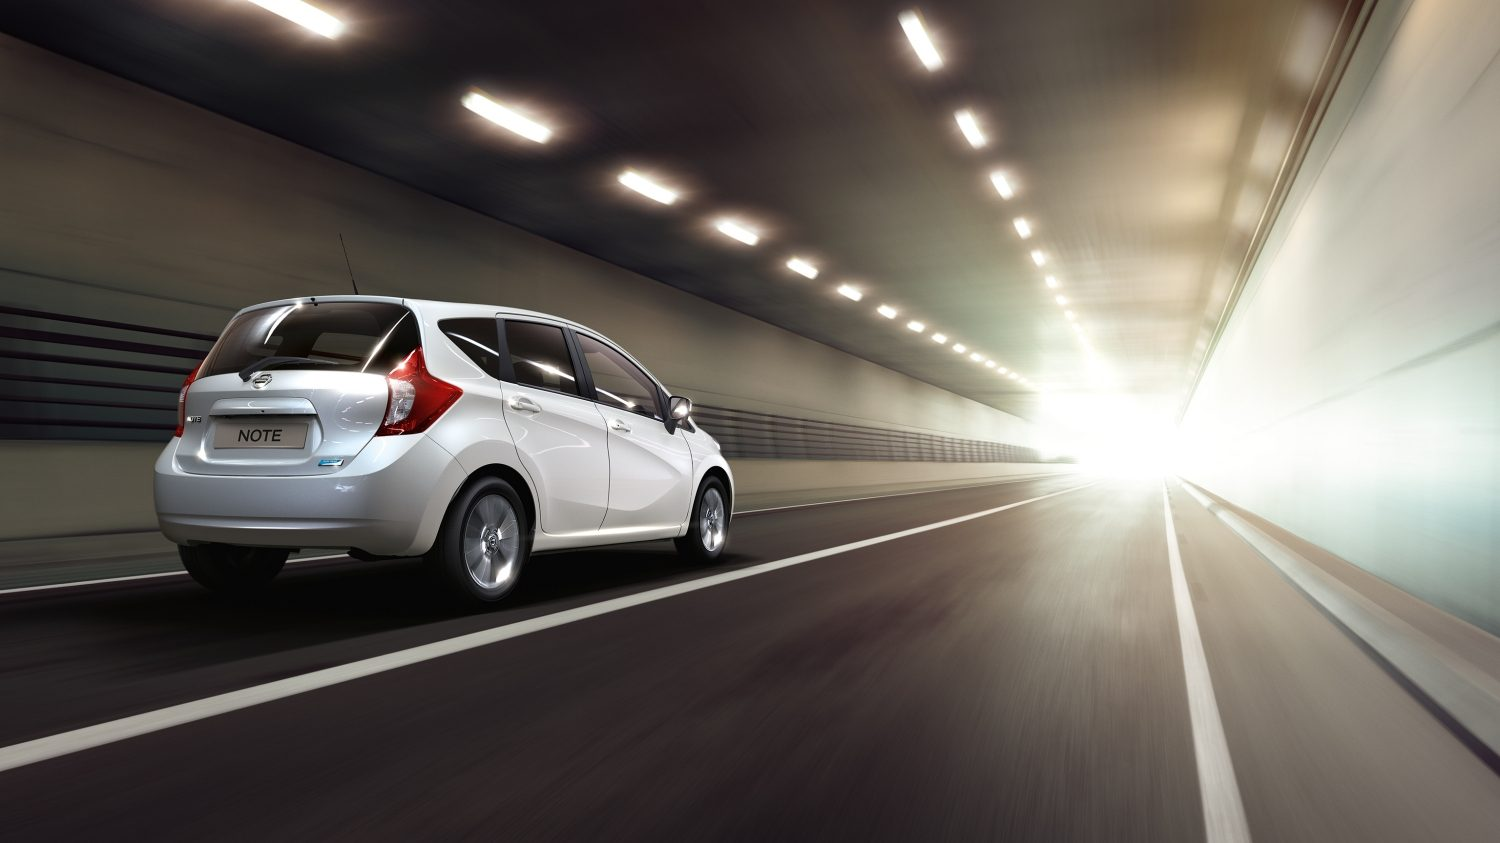 Nissan NOTE Arctic White – 3/4 vy bakifrån